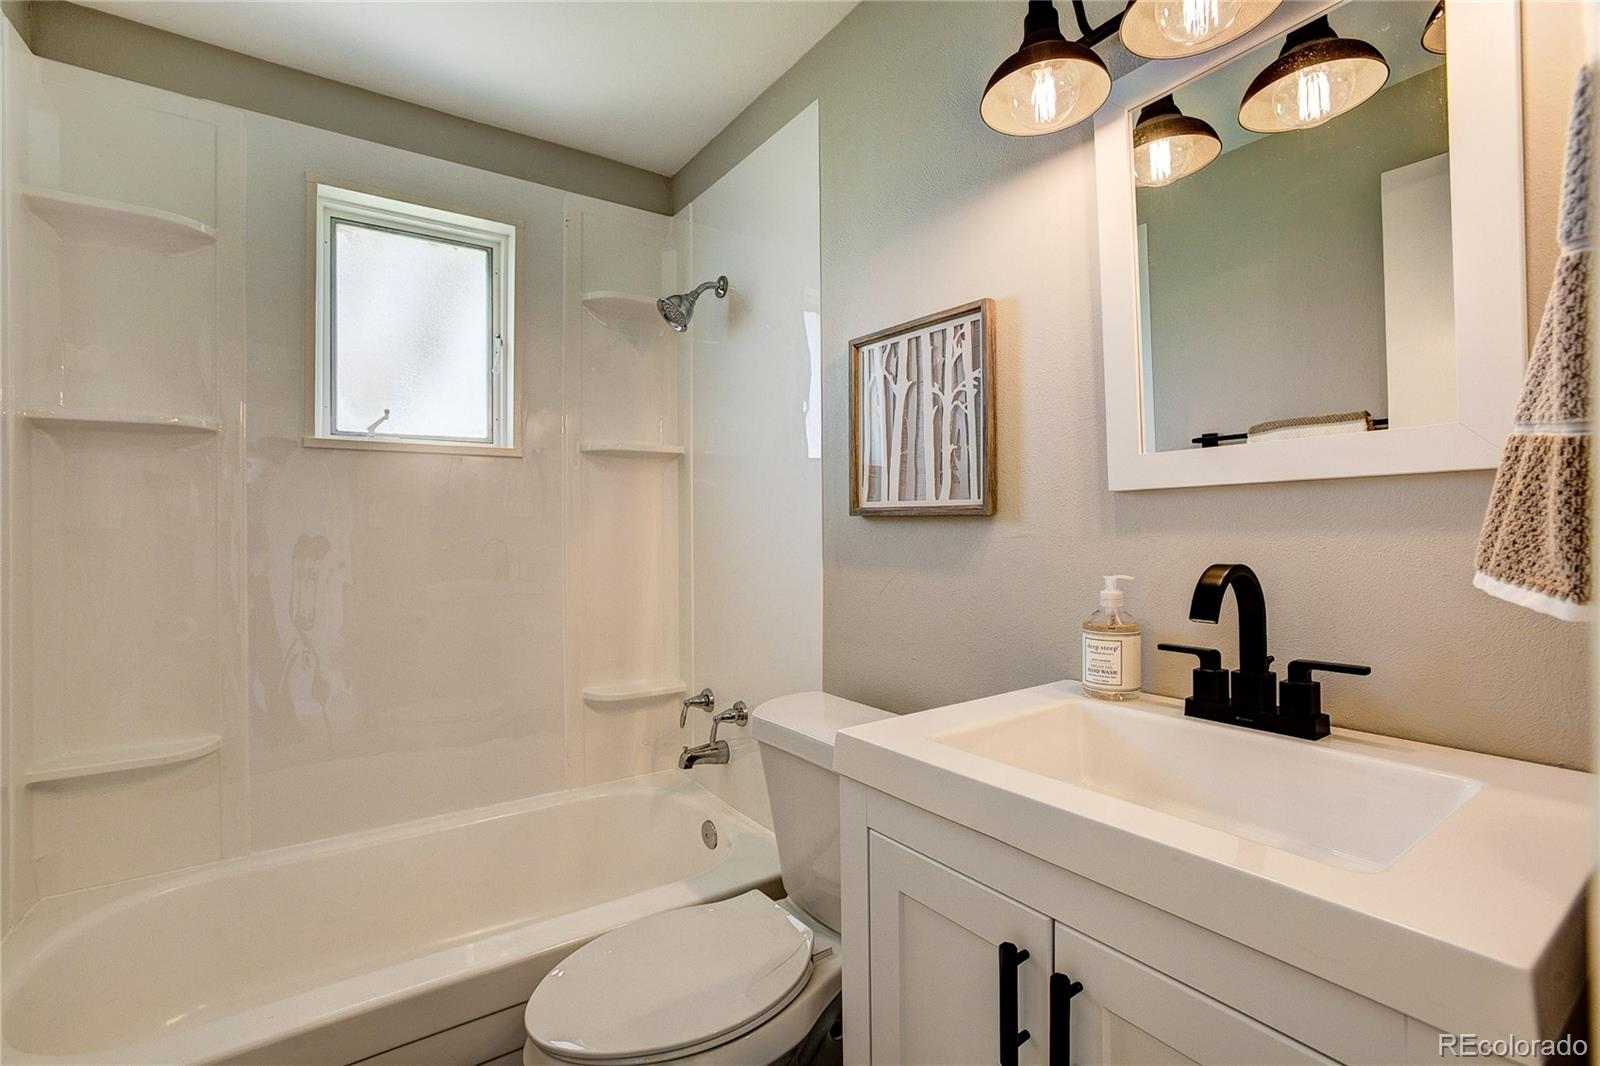 MLS# 9710462 - 18 - 1250 W 7th Ave Dr, Broomfield, CO 80020